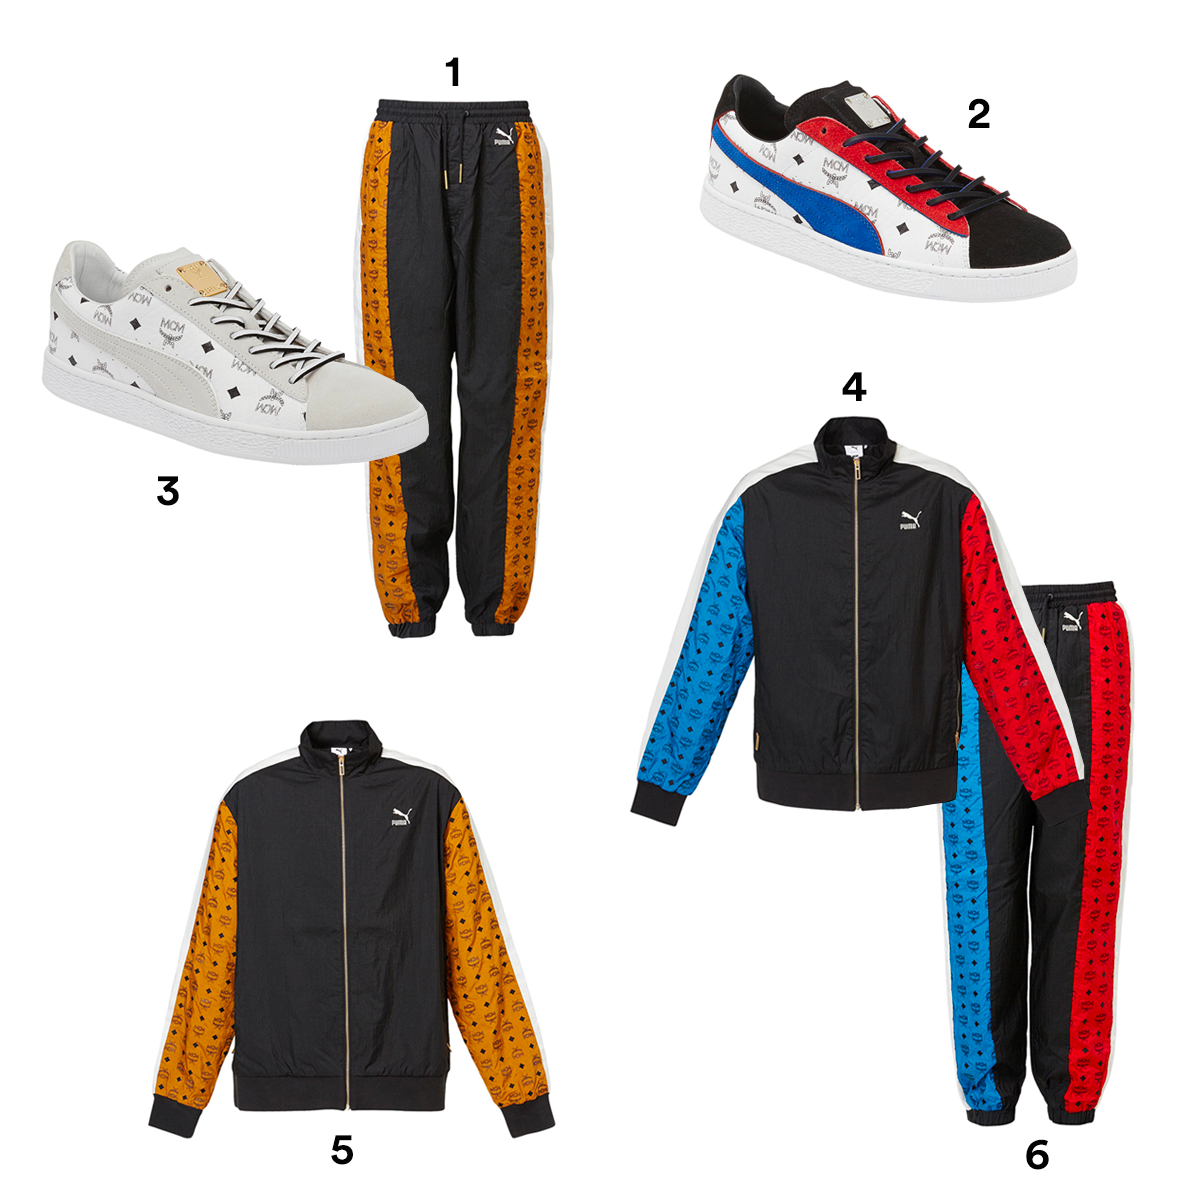 1) PUMA X MCM Tan and Black Hip-Hop Track Pants, available at Puma. 2) PUMA X MCM Red White and Blue Suede Classic Sneakers, available at Puma. 3) PUMA X MCM White Suede Classic Sneakers, available at Puma. 4) PUMA X MCM T7 Red White and Blue Track Jacket, available at Puma. 5) PUMA X MCM T7 Black and Tan Track Jacket, available at Puma. 6) PUMA X MCM Red White and Blue Track Pants, available at Puma.